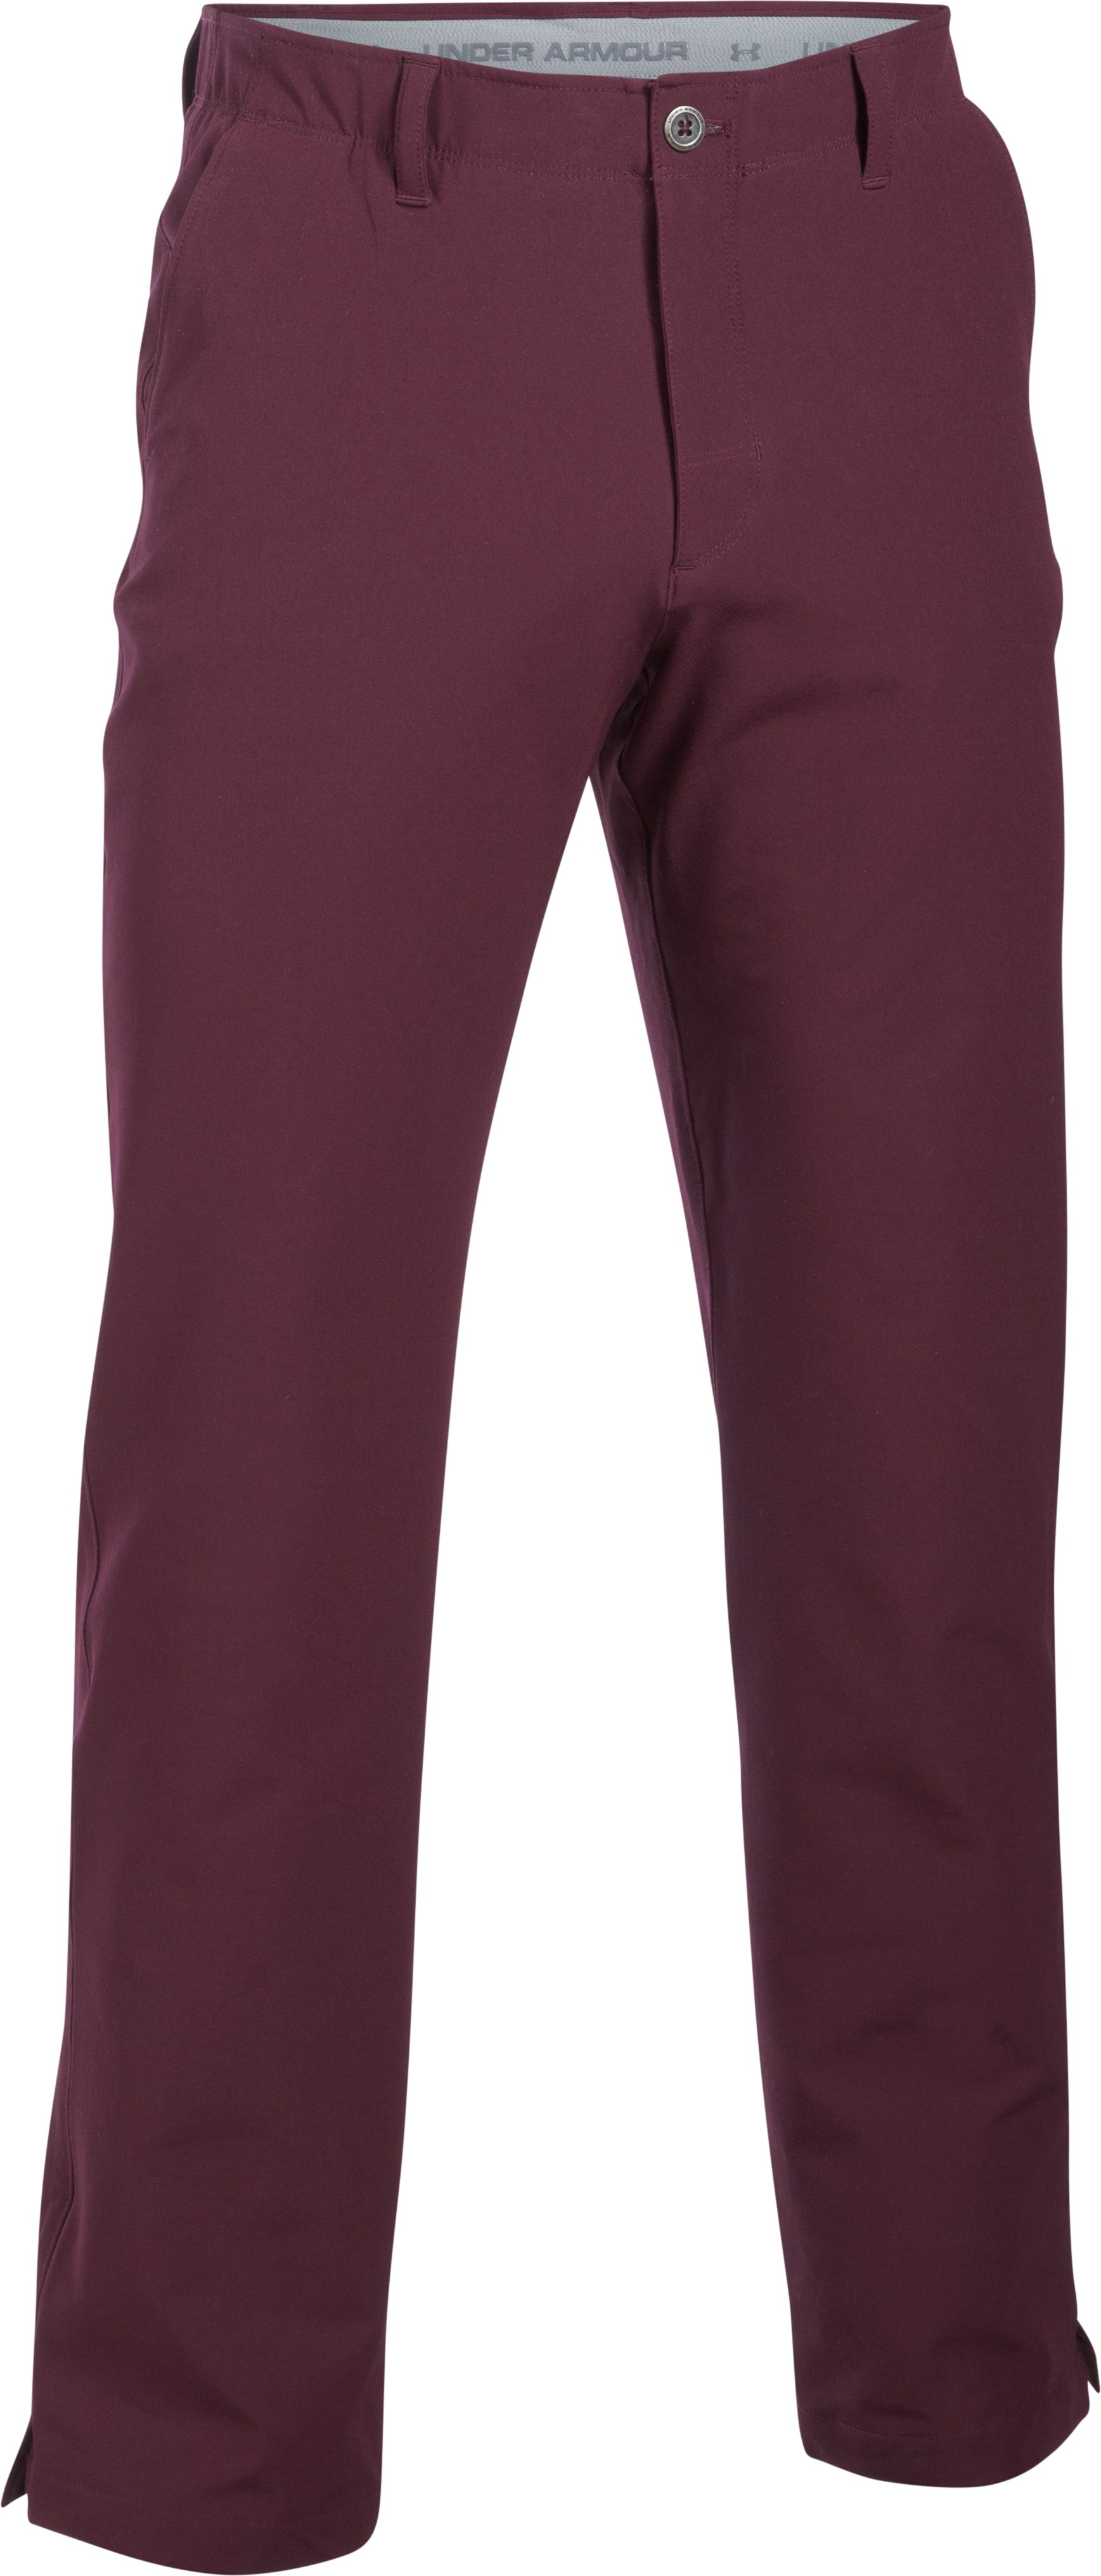 Men's ColdGear® Infrared Match Play Pants — Straight Leg, RAISIN RED, undefined